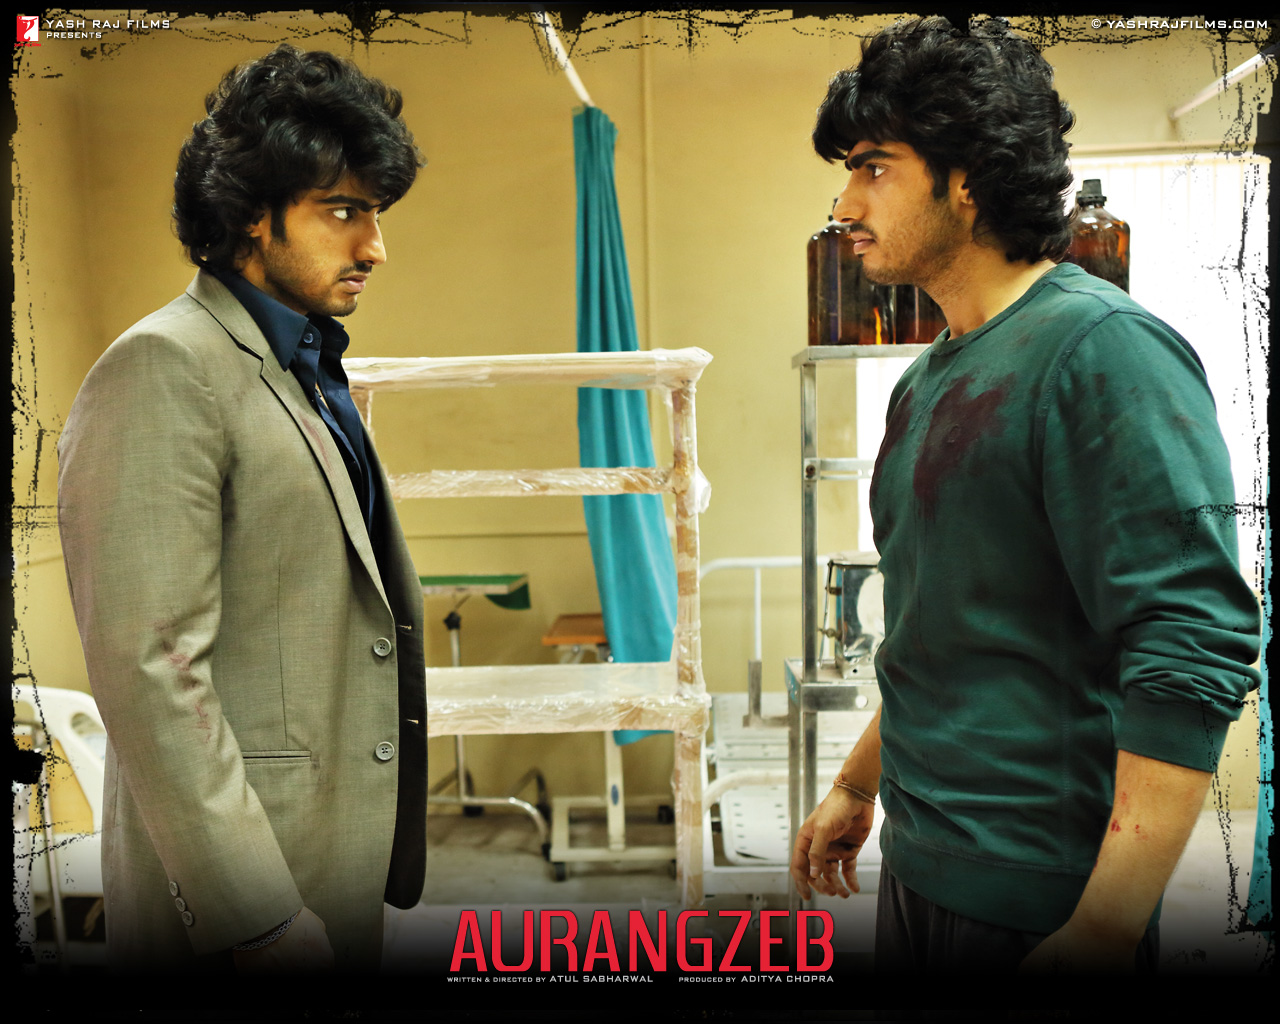 15 Preview: Aurangzeb Synopsis and Stills!